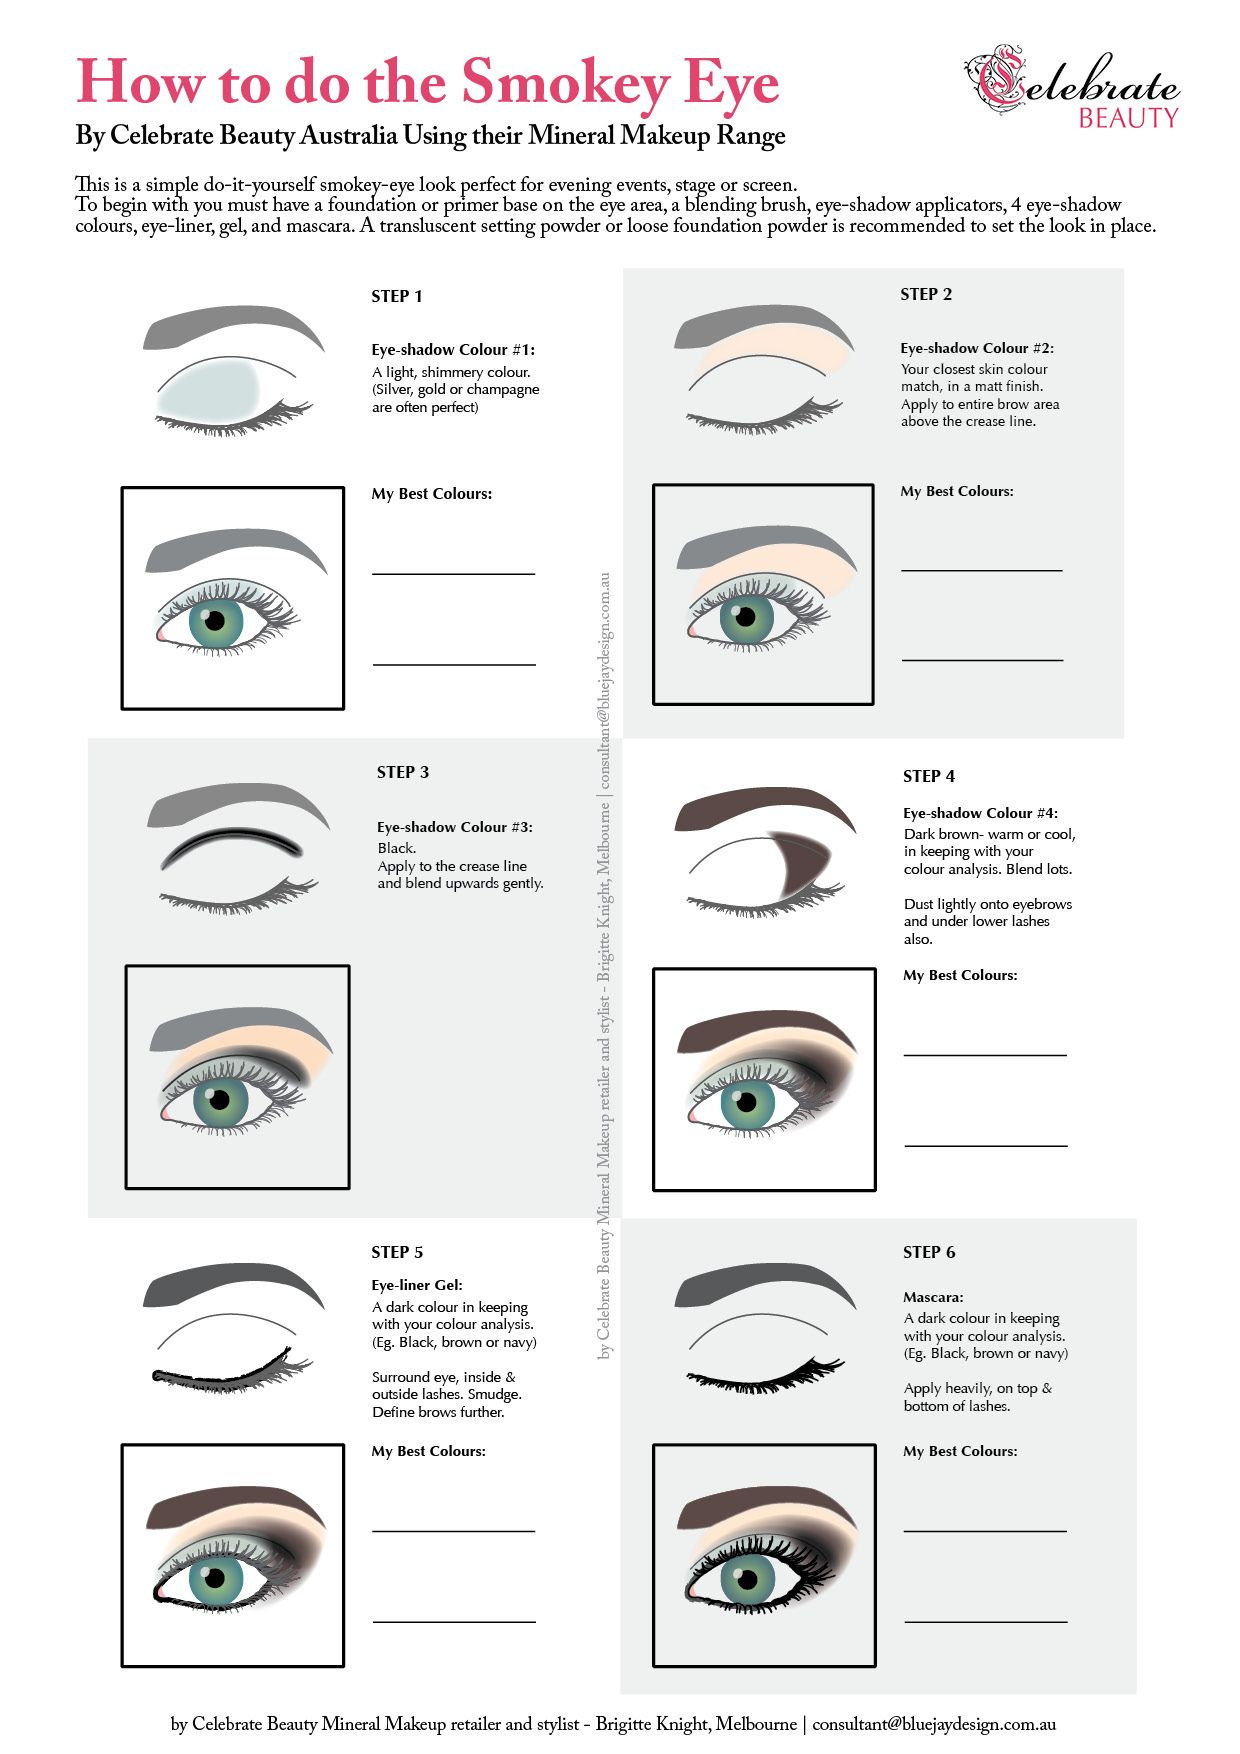 how to do the smokey eye diagram for makeup application visit my board for the upcoming course in melbourne smokeyeye makeuptutorial makeupdemo  [ 1240 x 1754 Pixel ]